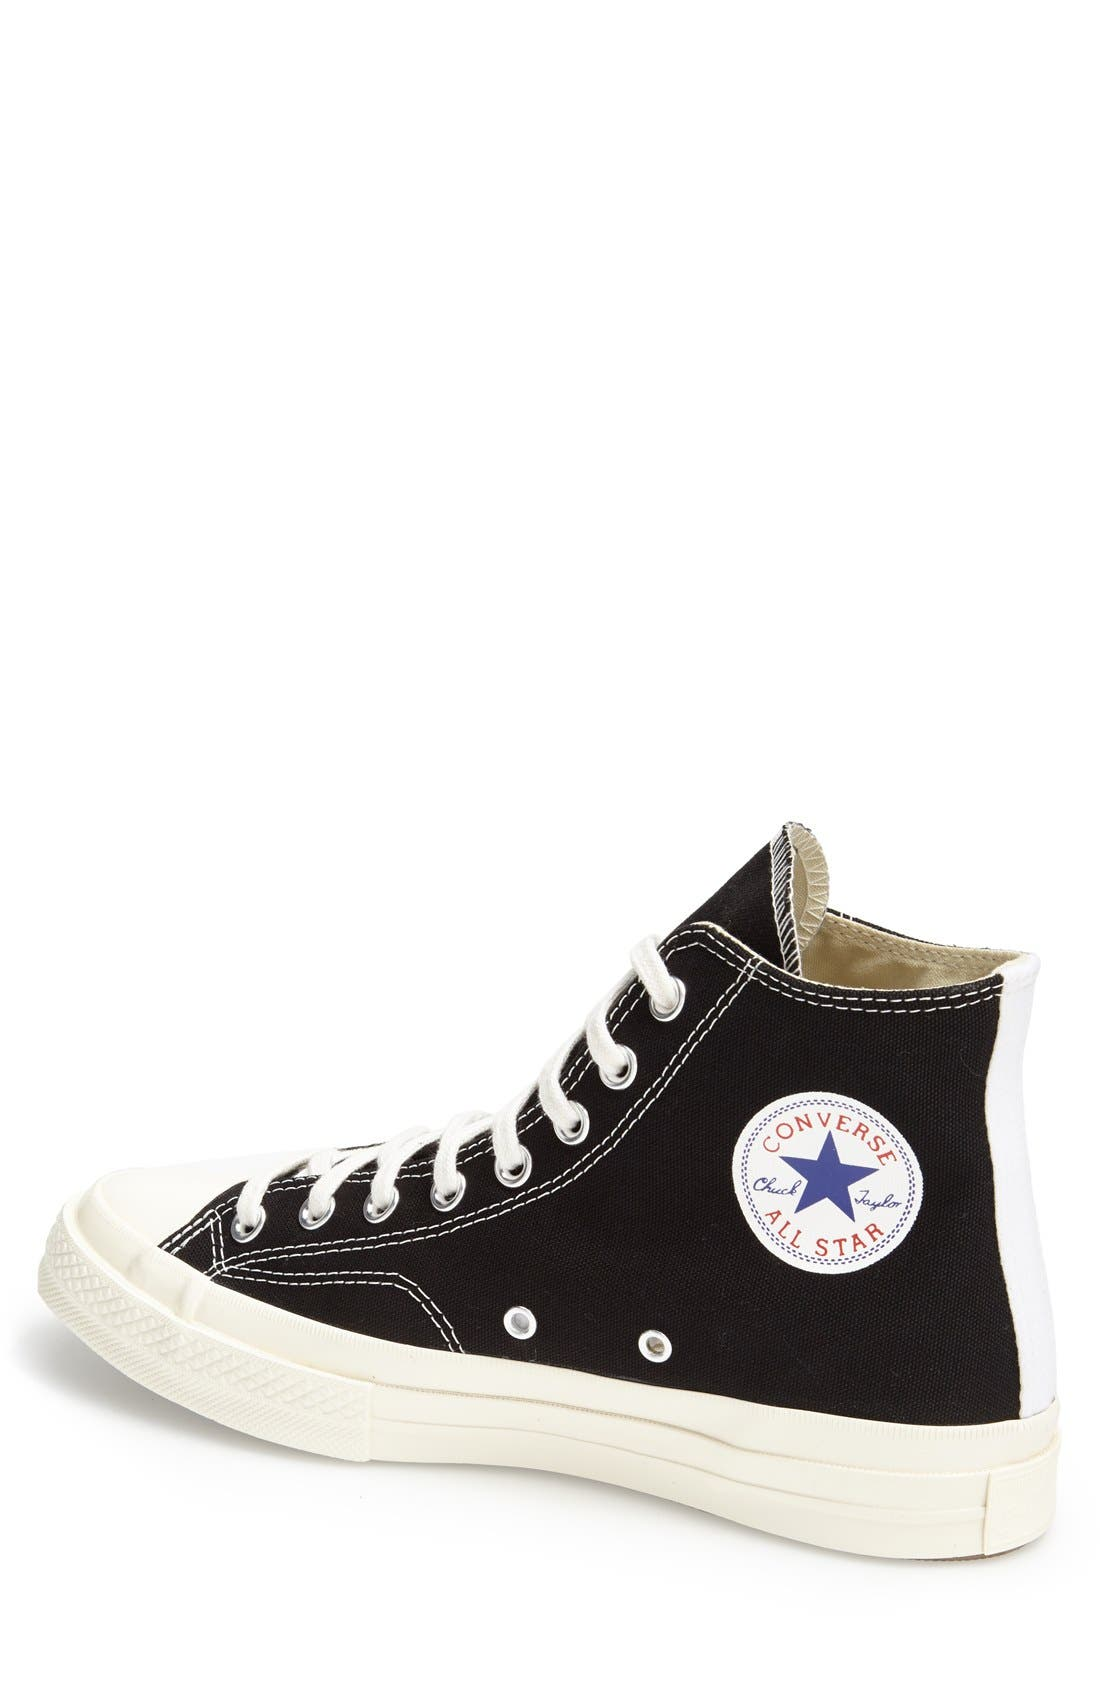 PLAY x Converse Chuck Taylor<sup>®</sup> - Hidden Heart High Top Sneaker,                             Alternate thumbnail 4, color,                             BLACK CANVAS